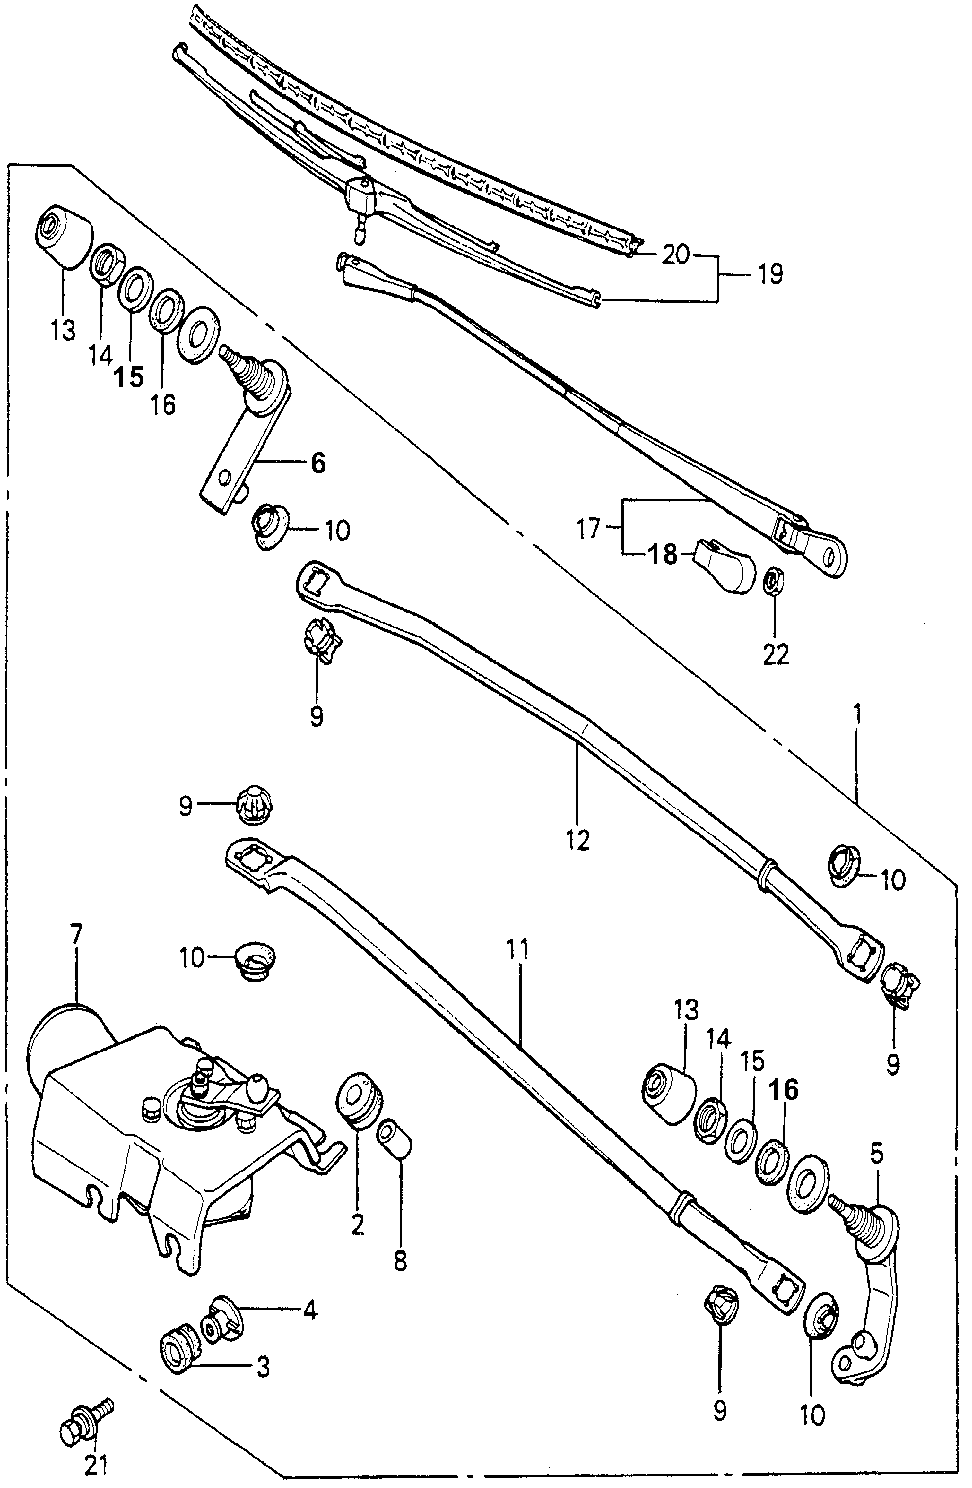 38414-671-662 - ROD A, CONNECTING